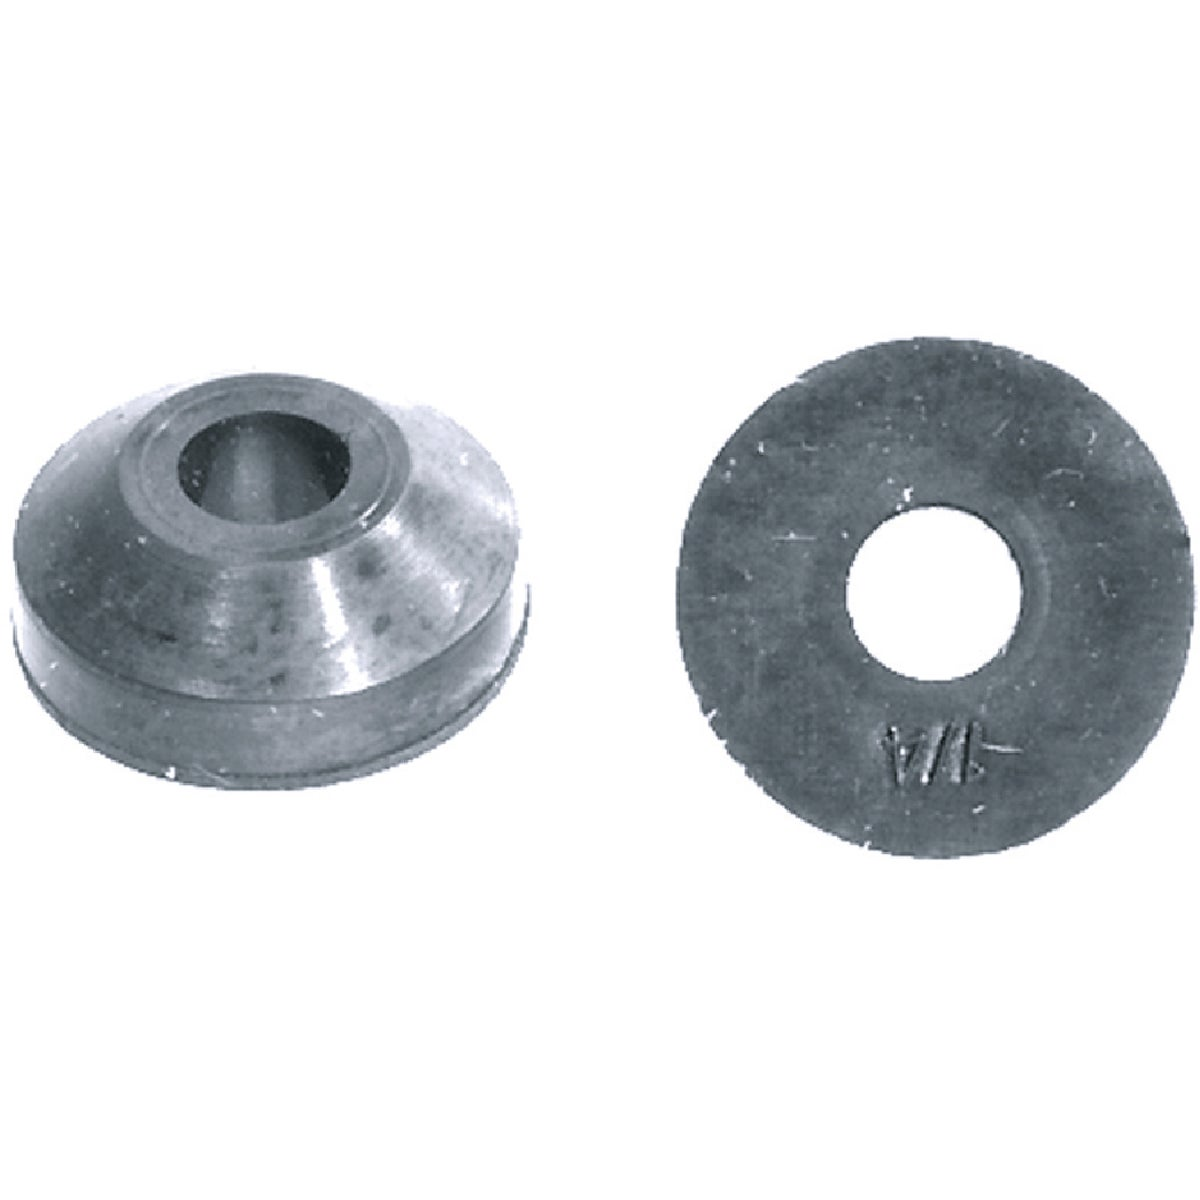 1/4 BEVEL WASHER